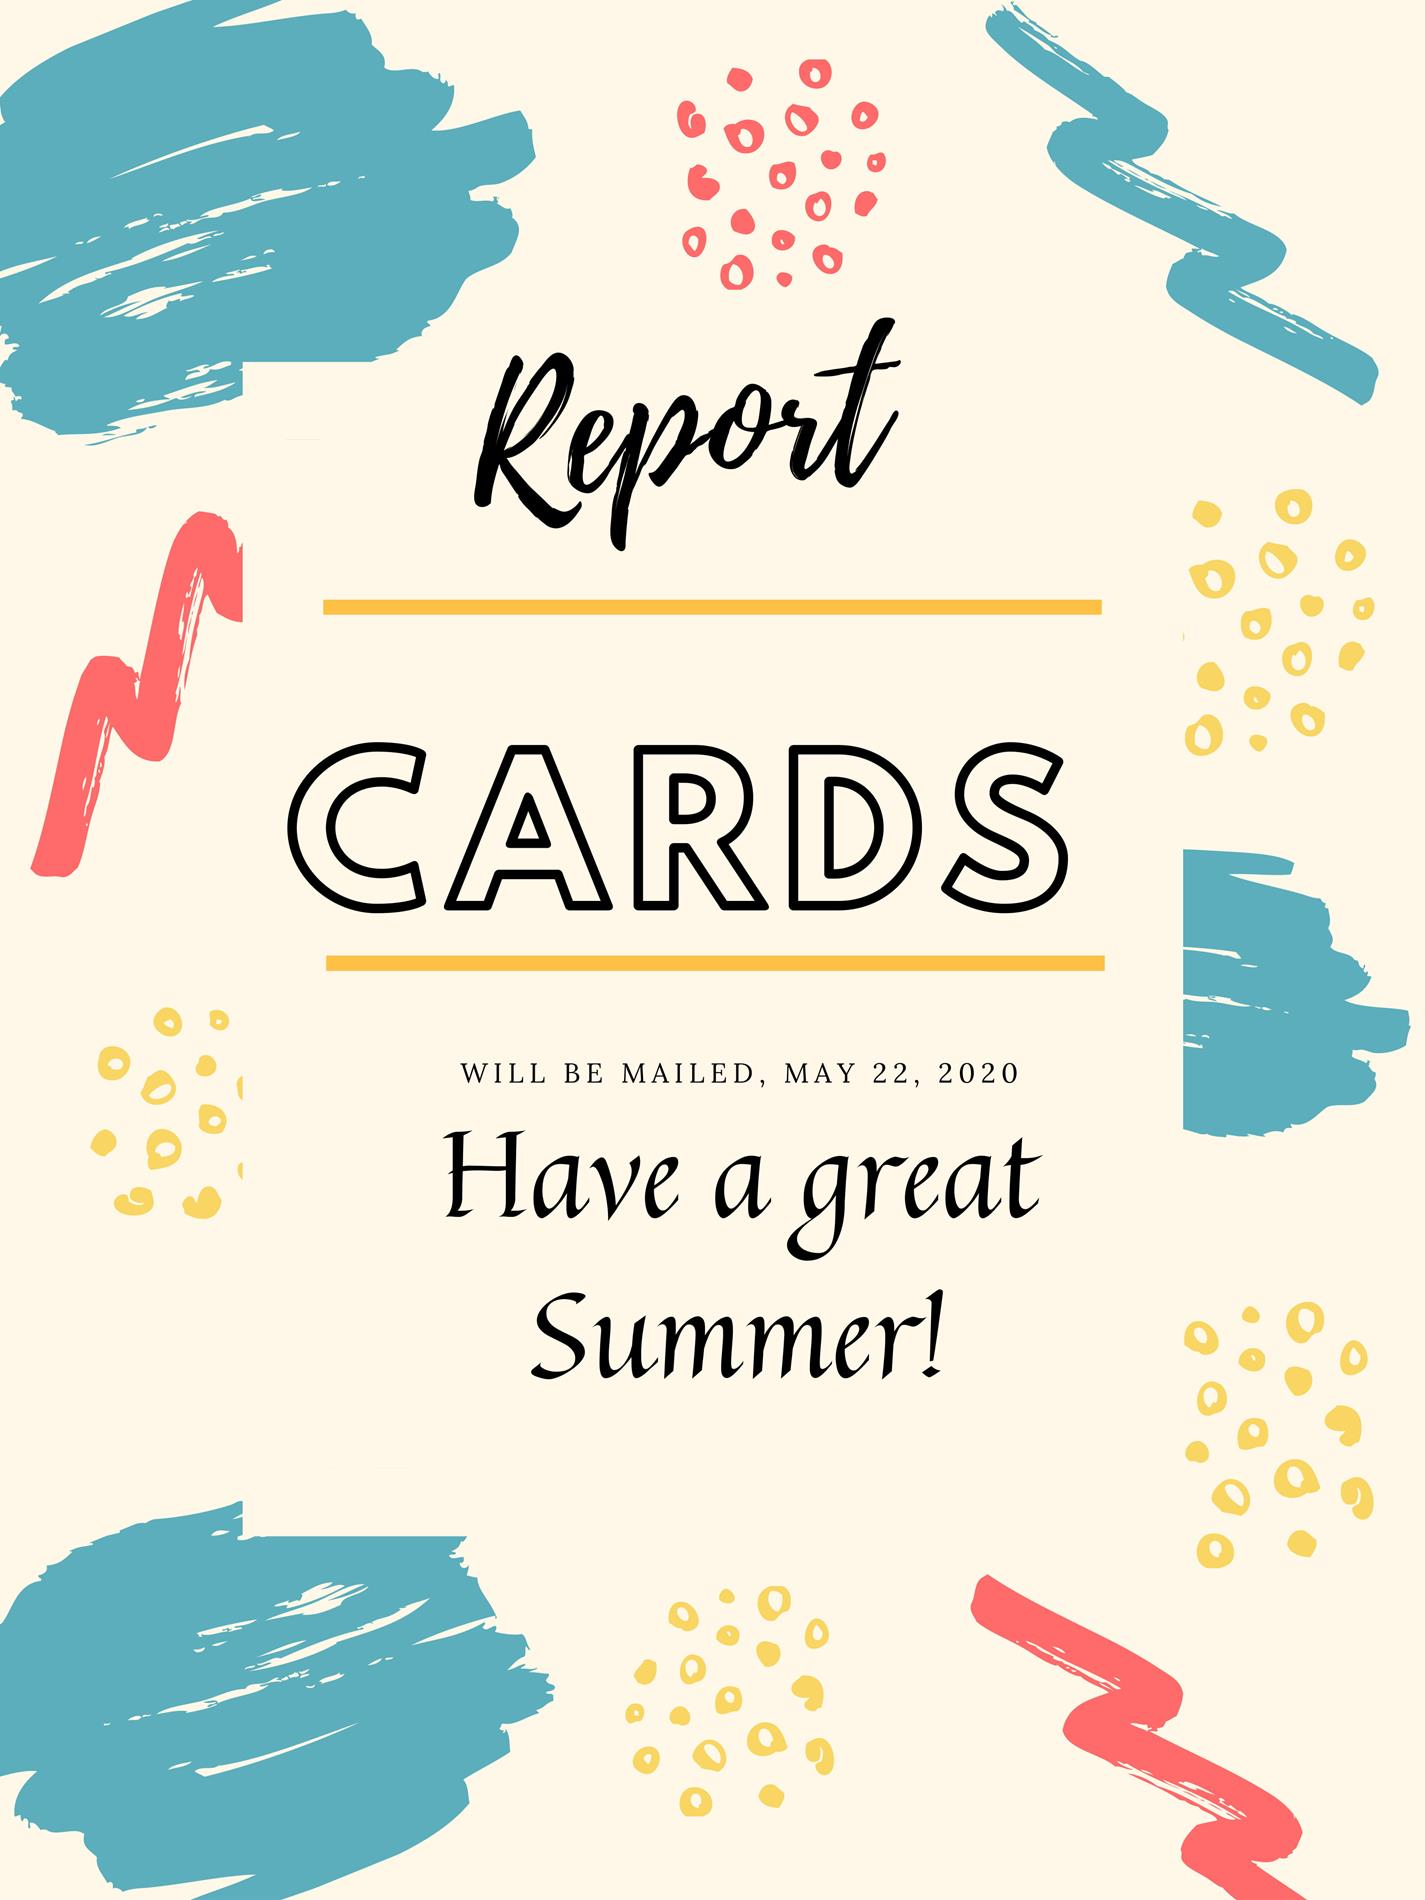 Report Cards will be mailed, May 22, 2020. Have a great summer.